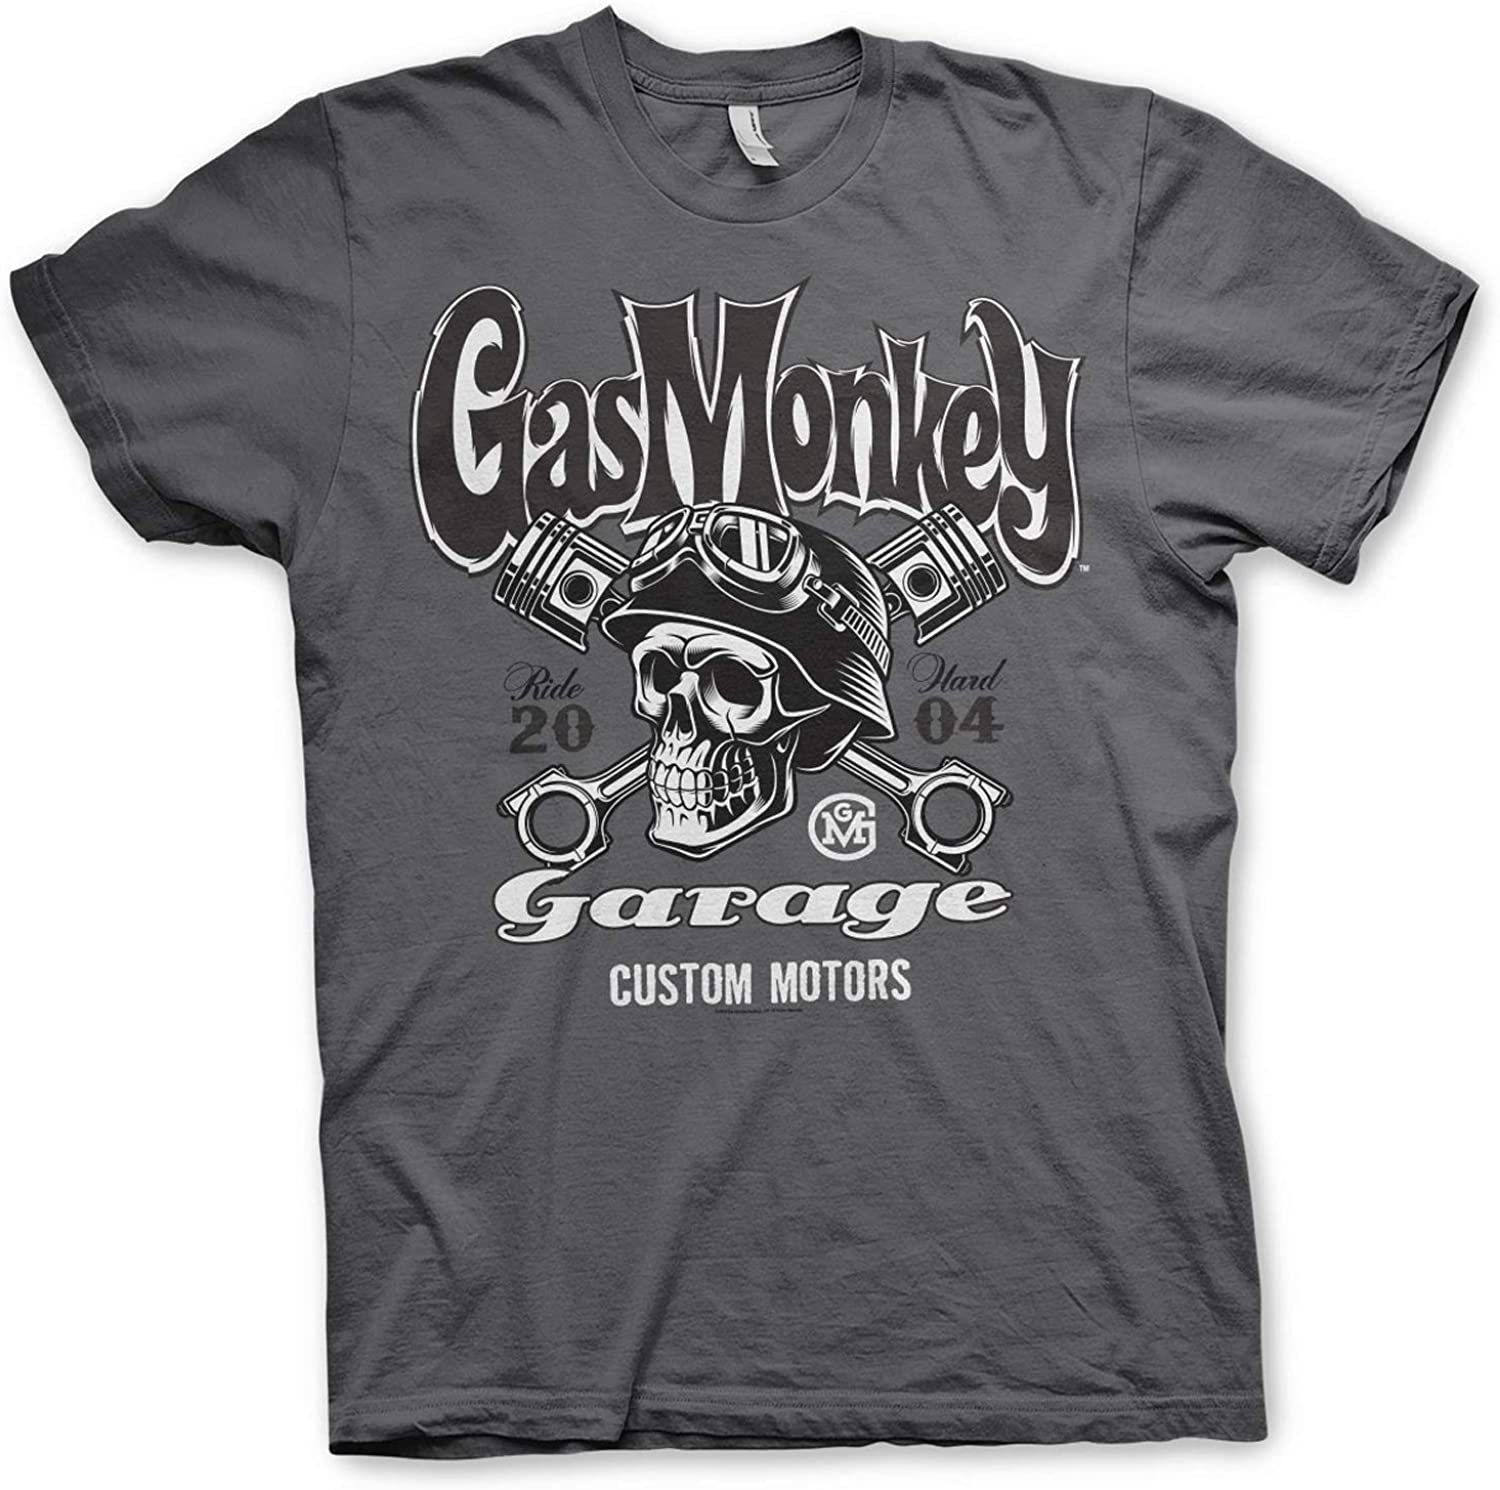 Custom Motors Skull T-Shirt Maglia Maglietta GMG Licenza Originale Gas Monkey Garage Officially Licensed